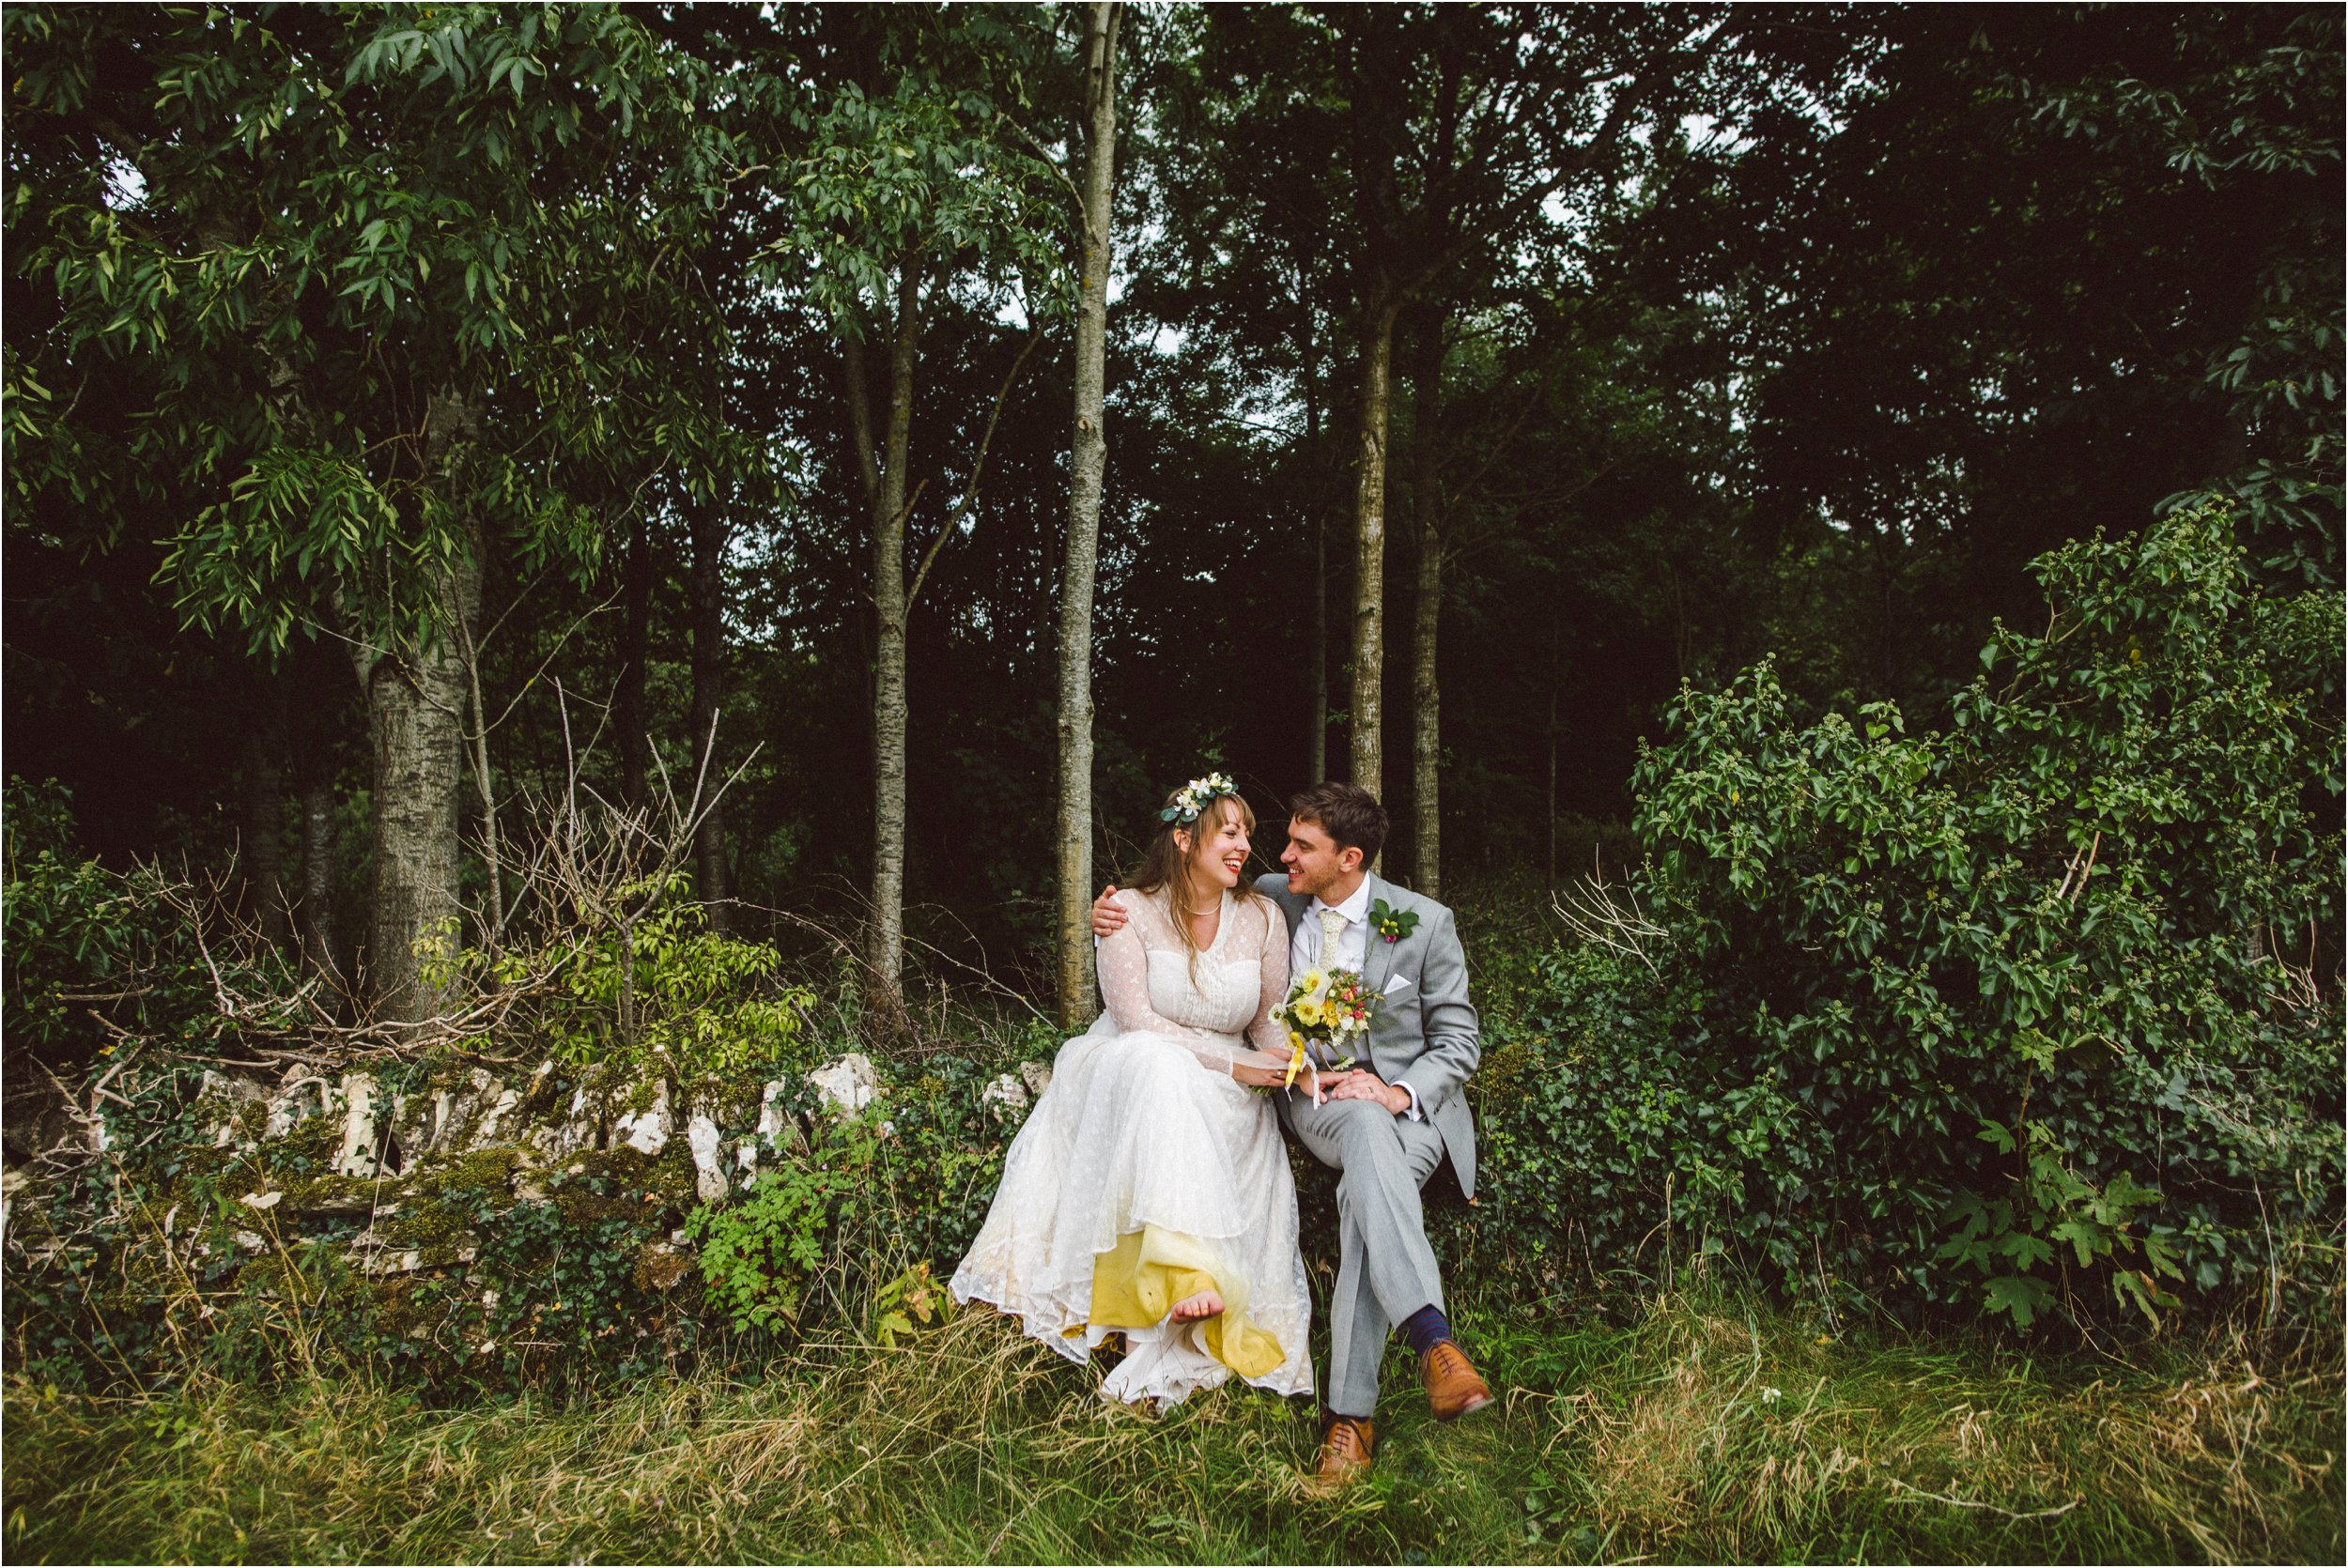 Gloucestershire outdoor wedding photographer_0139.jpg